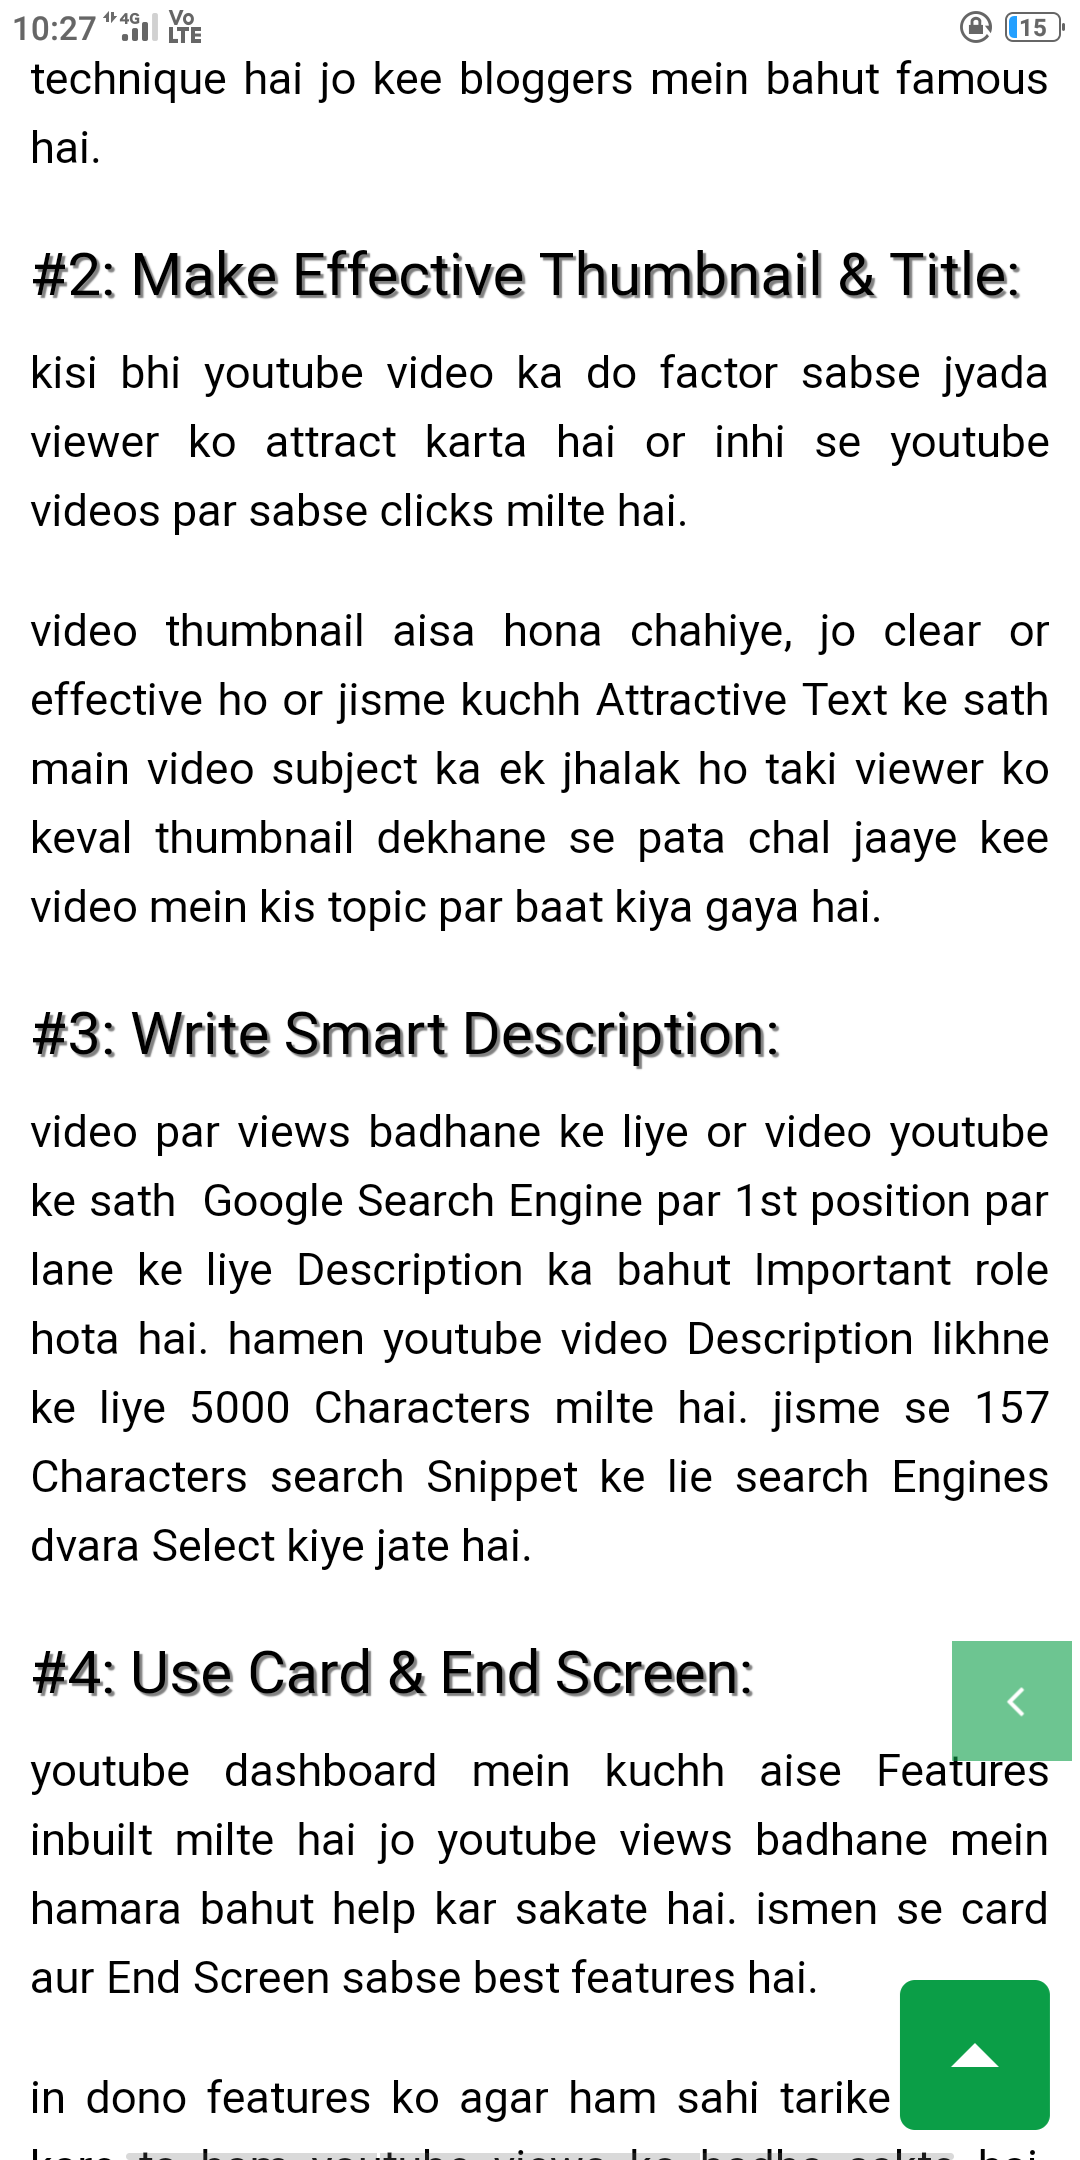 Creating Full Informative And Seo-Friendly Article.